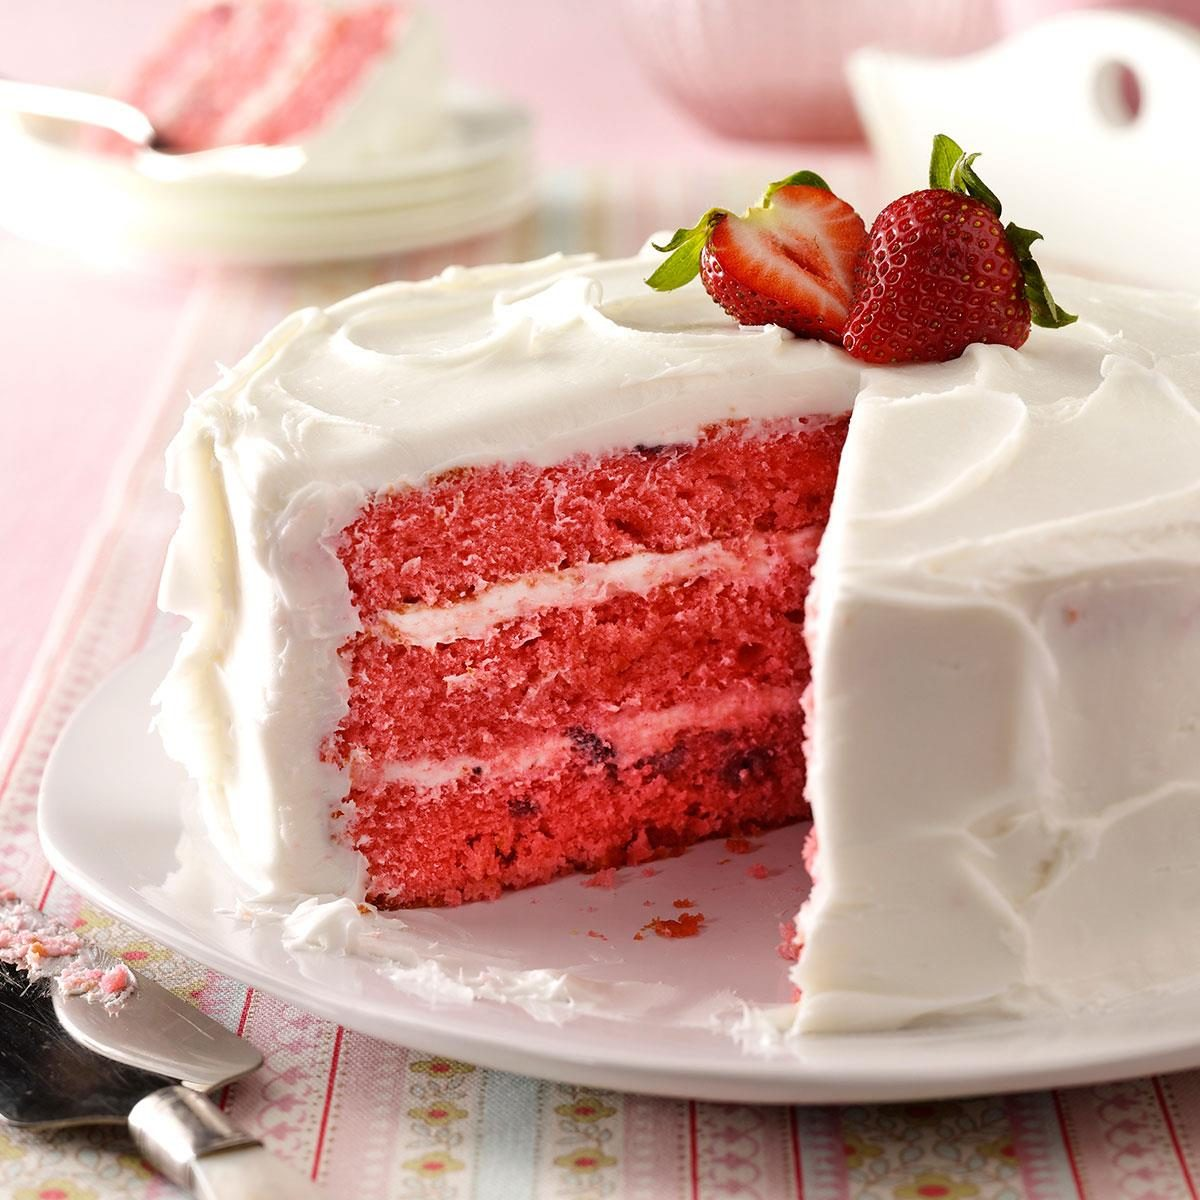 Strawberry Cake Recipe | Taste of Home